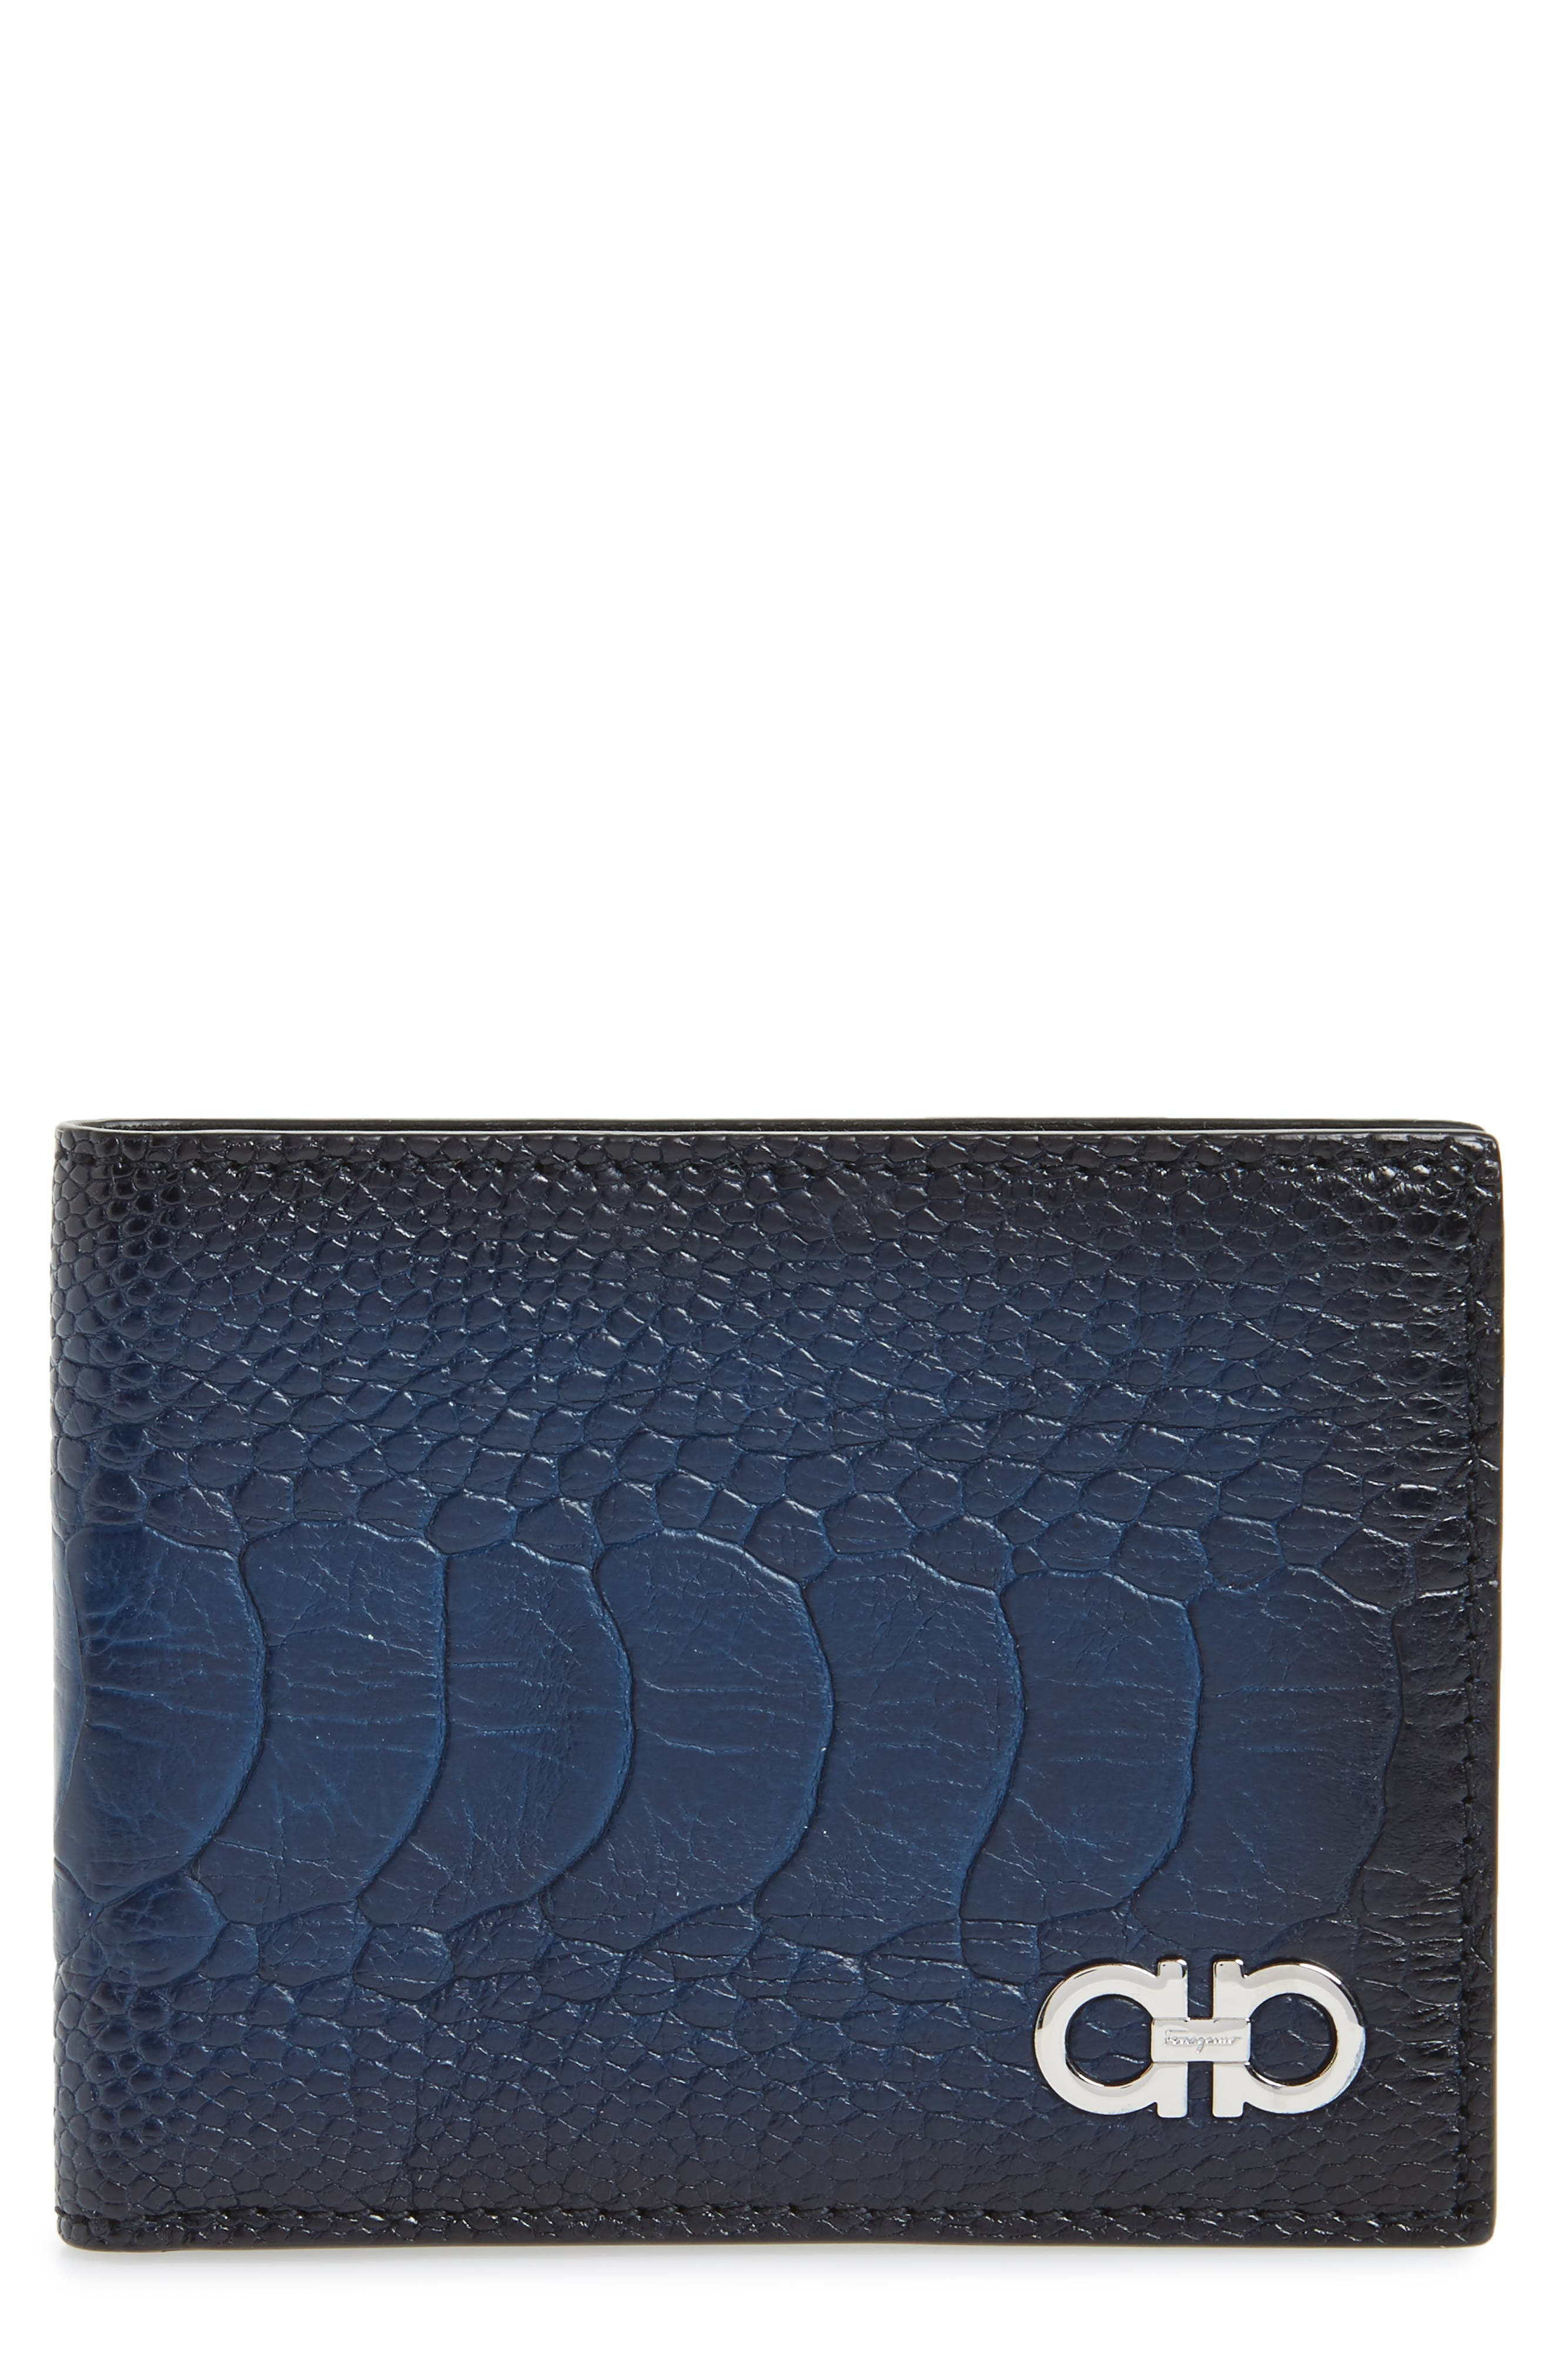 Leather Wallet,                             Main thumbnail 2, color,